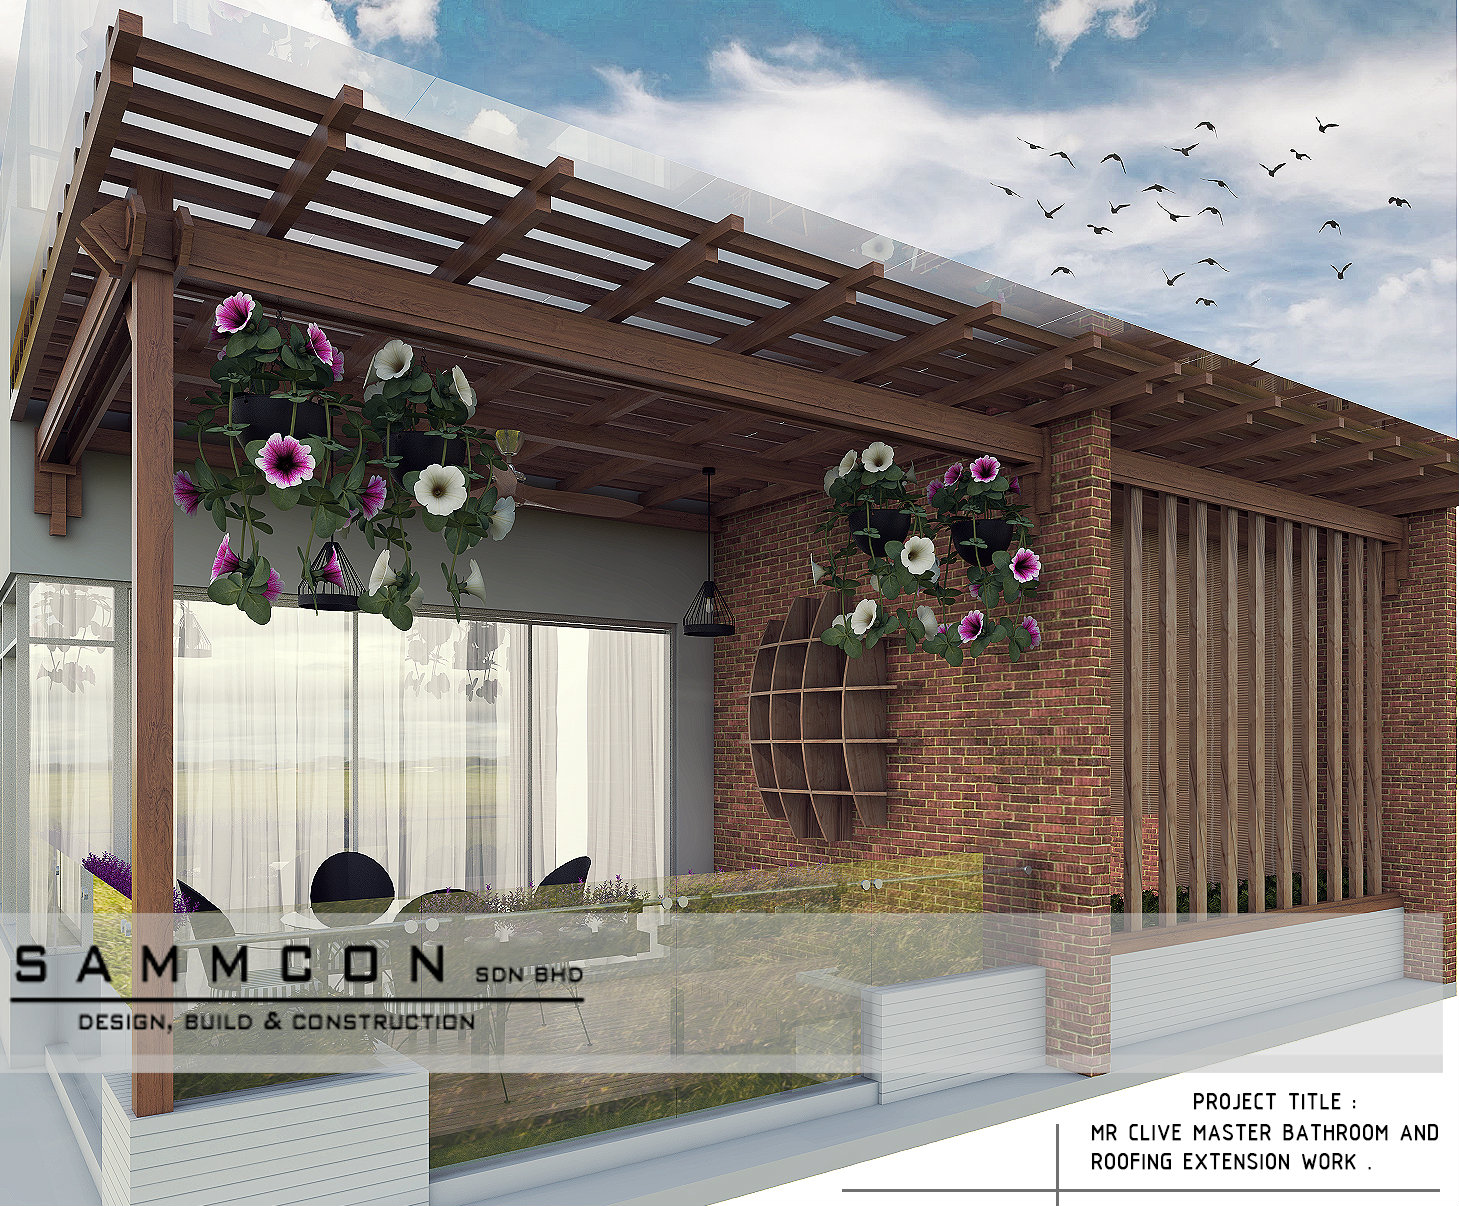 pergola design. balcony design.